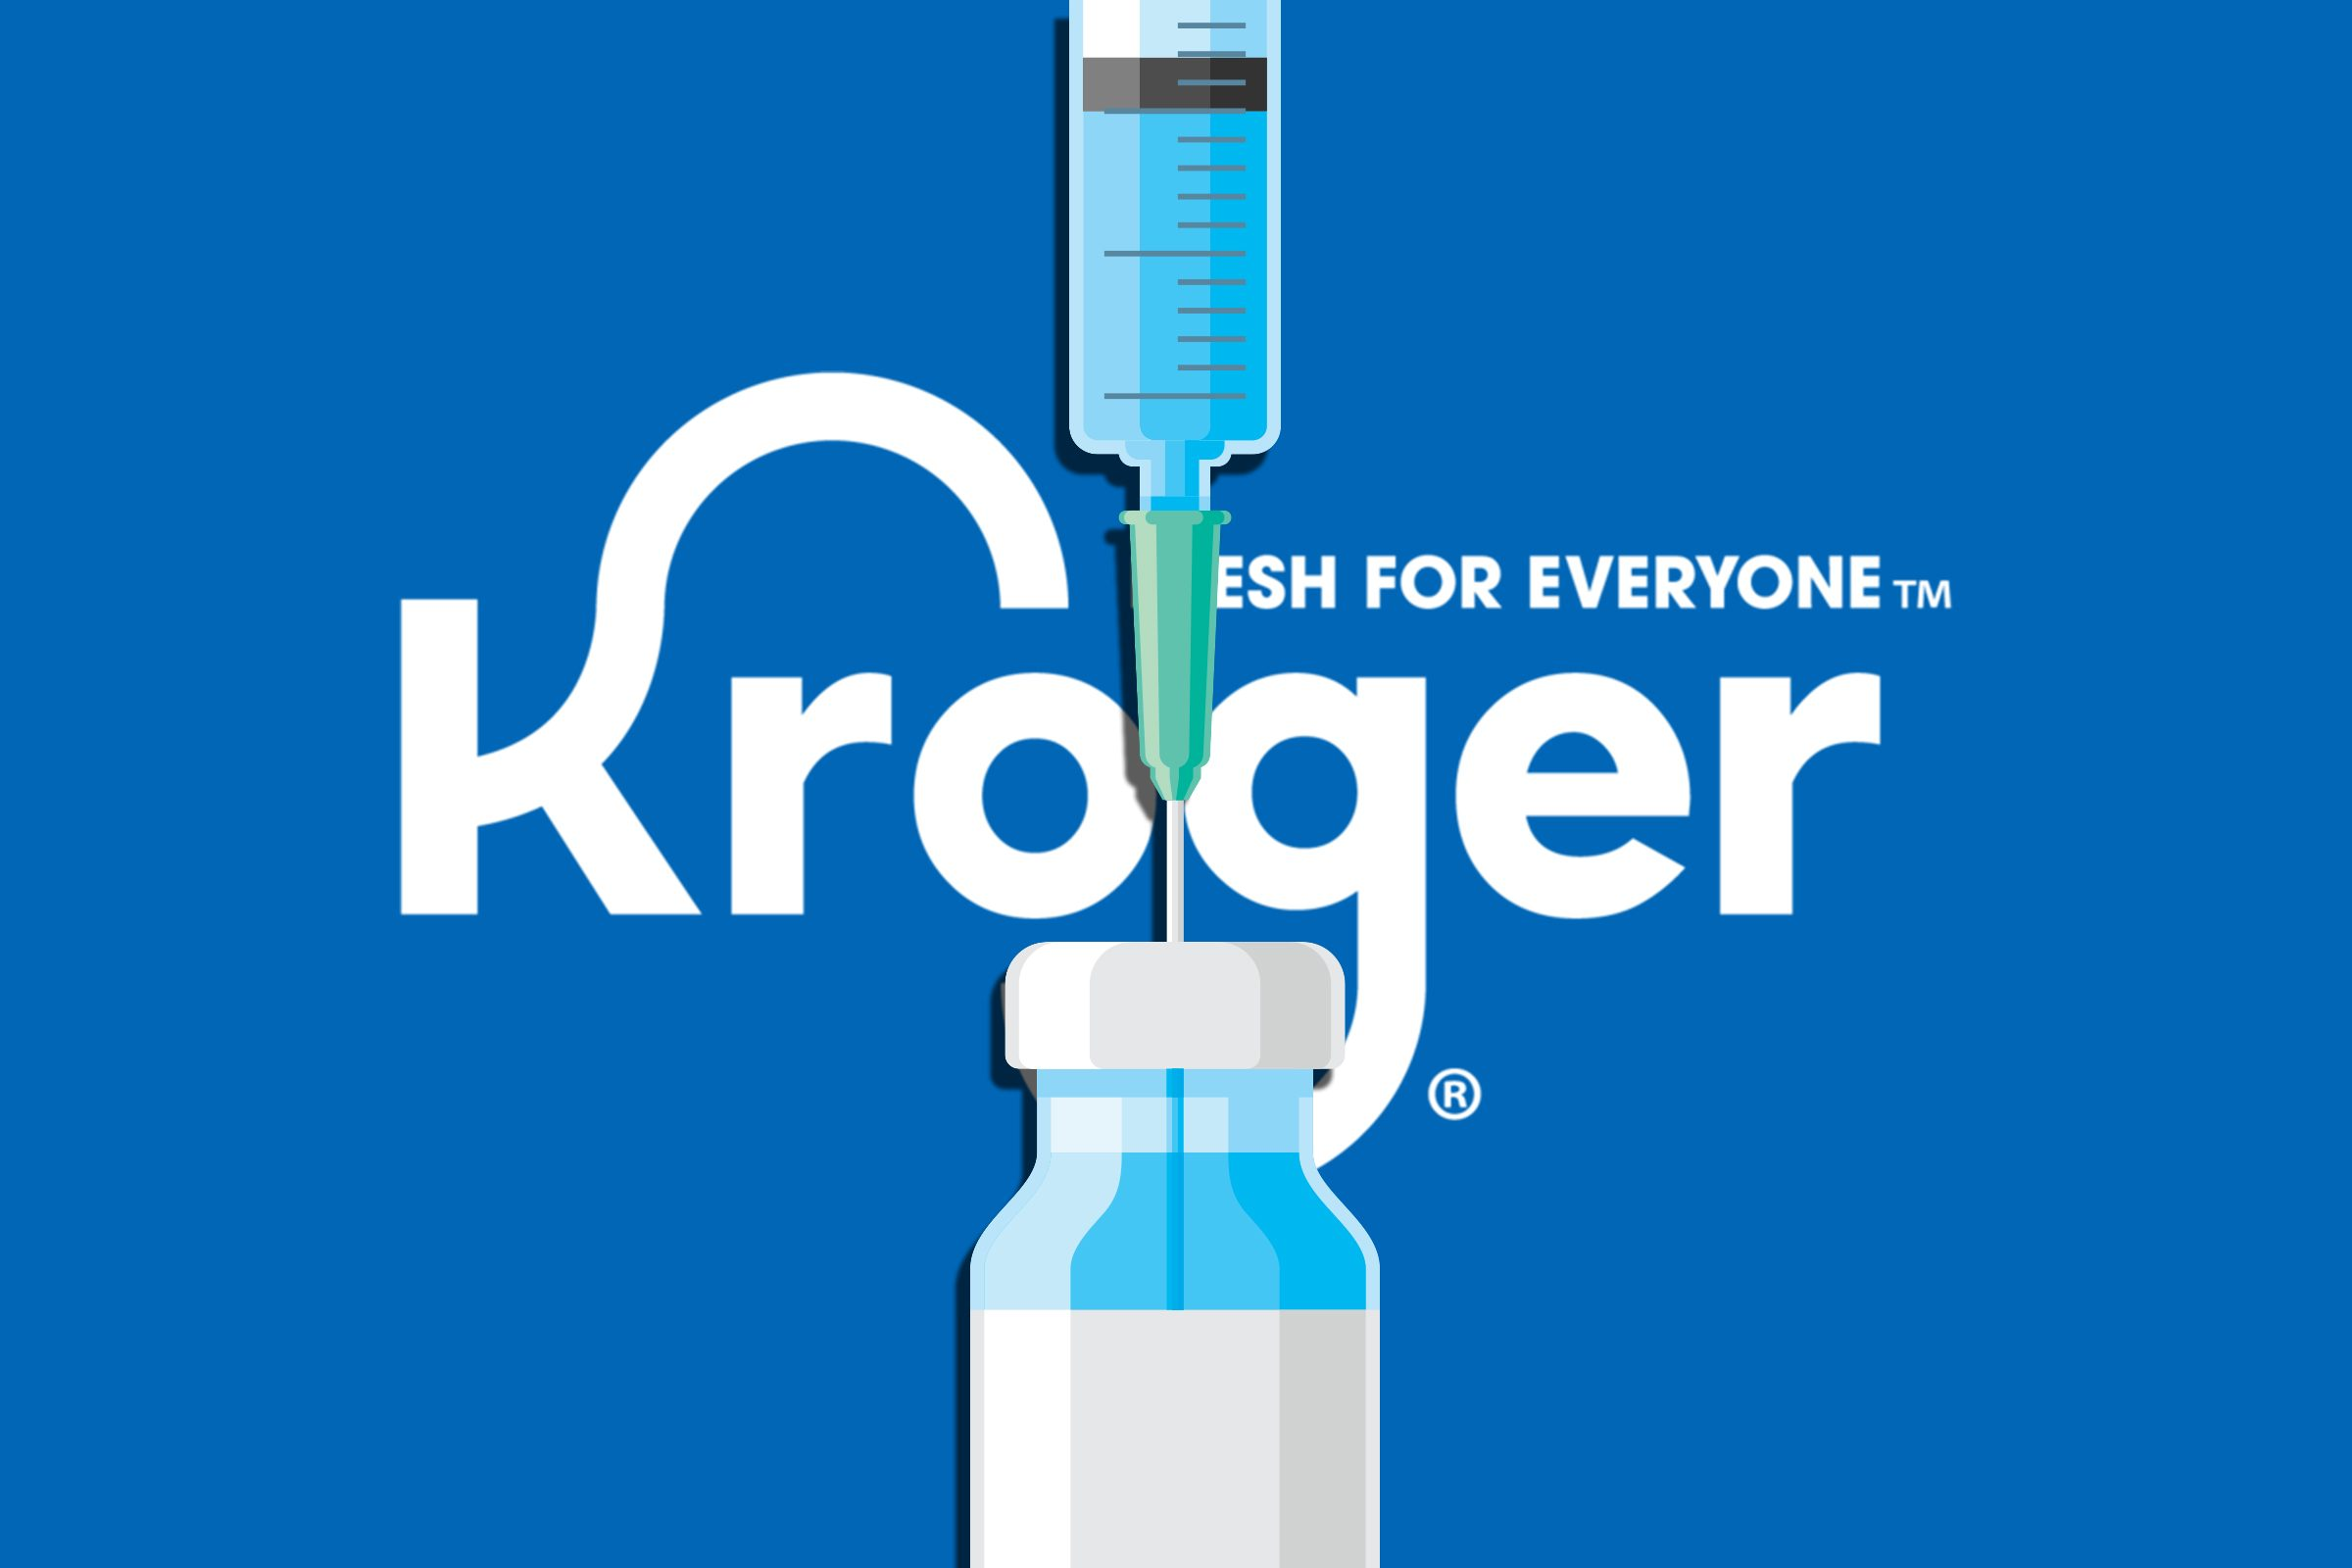 kroger flu shot illustration